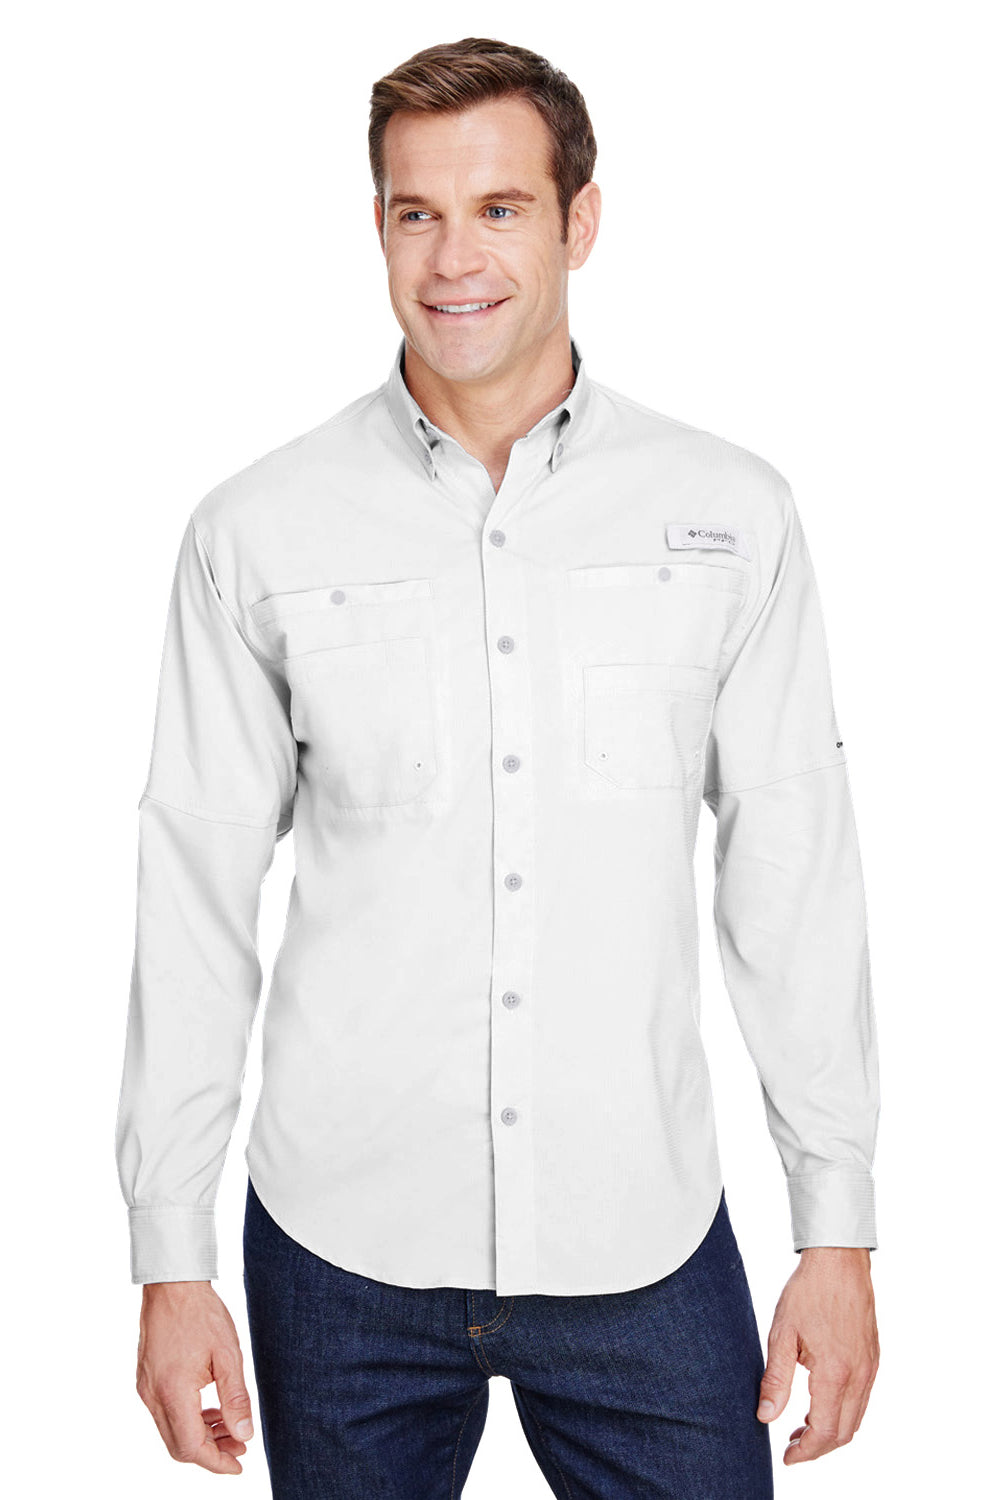 Columbia 7253 Mens Tamiami II Moisture Wicking Long Sleeve Button Down Shirt w/ Double Pockets White Front